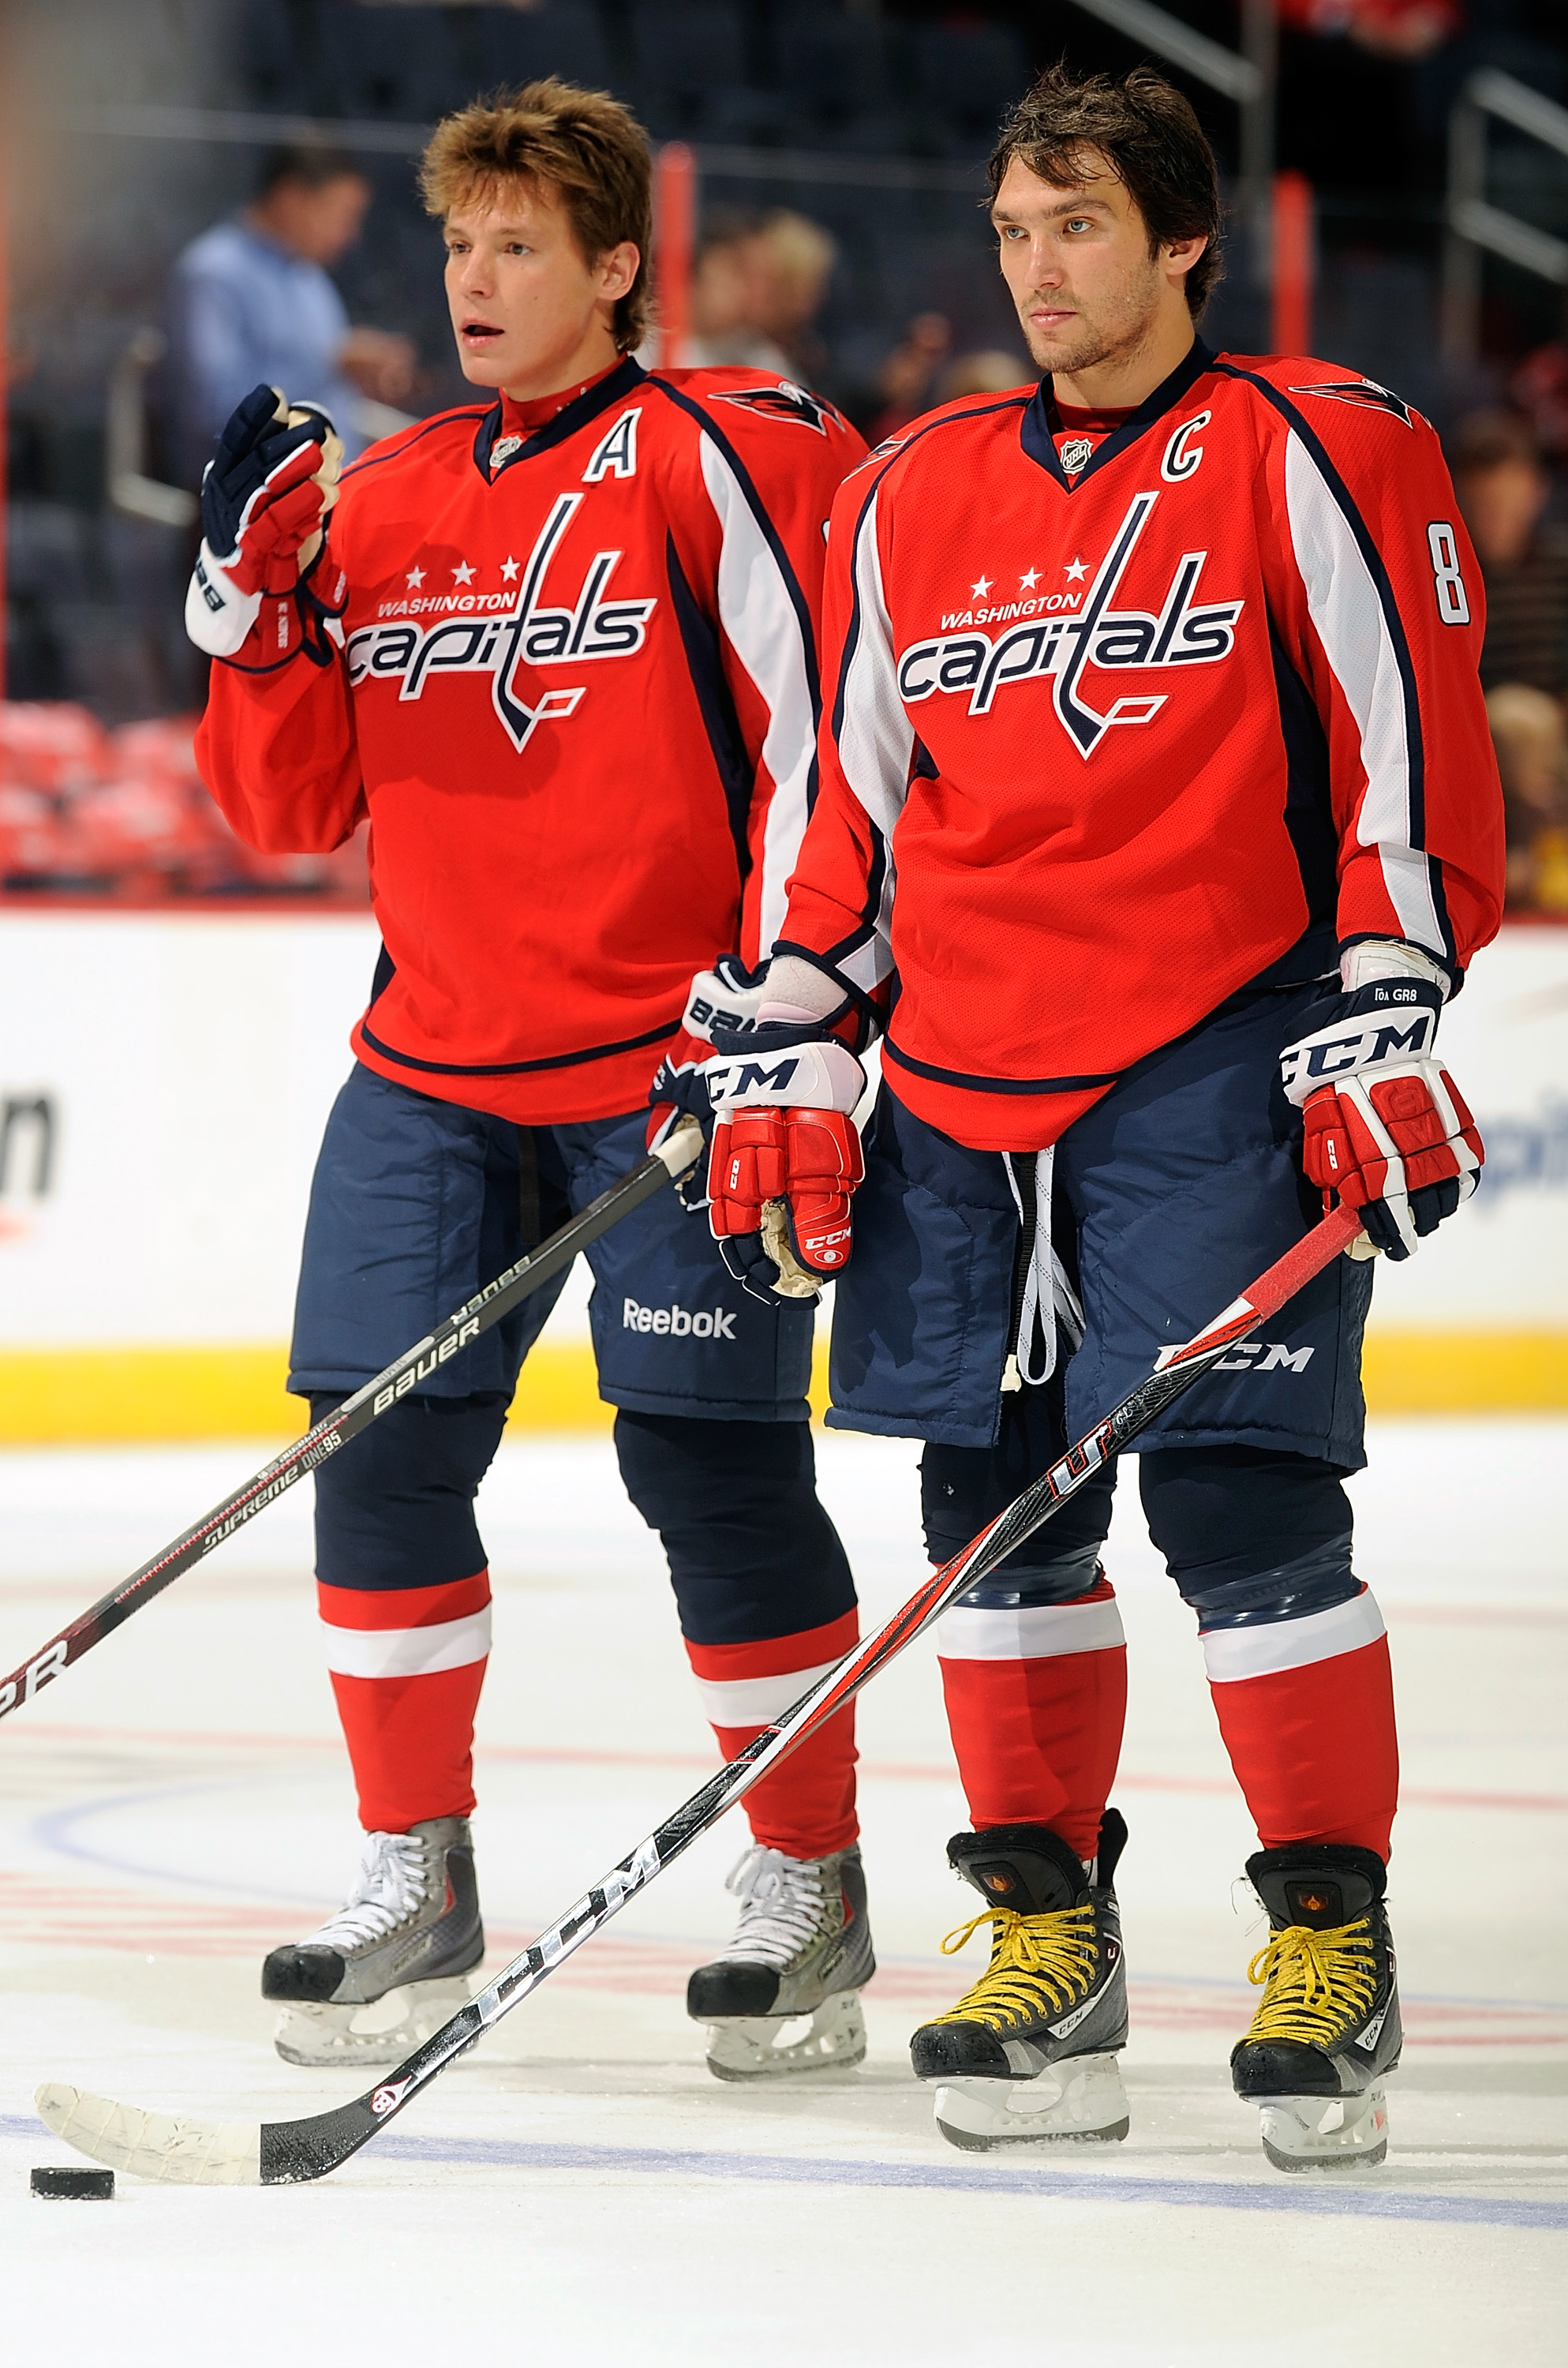 WASHINGTON - SEPTEMBER 28:  Alex Ovechkin #8 and Alexander Semin #28 of the Washington Capitals warm up before the game against the Boston Bruins at Verizon Center on September 28, 2010 in Washington, DC.  (Photo by Greg Fiume/Getty Images)